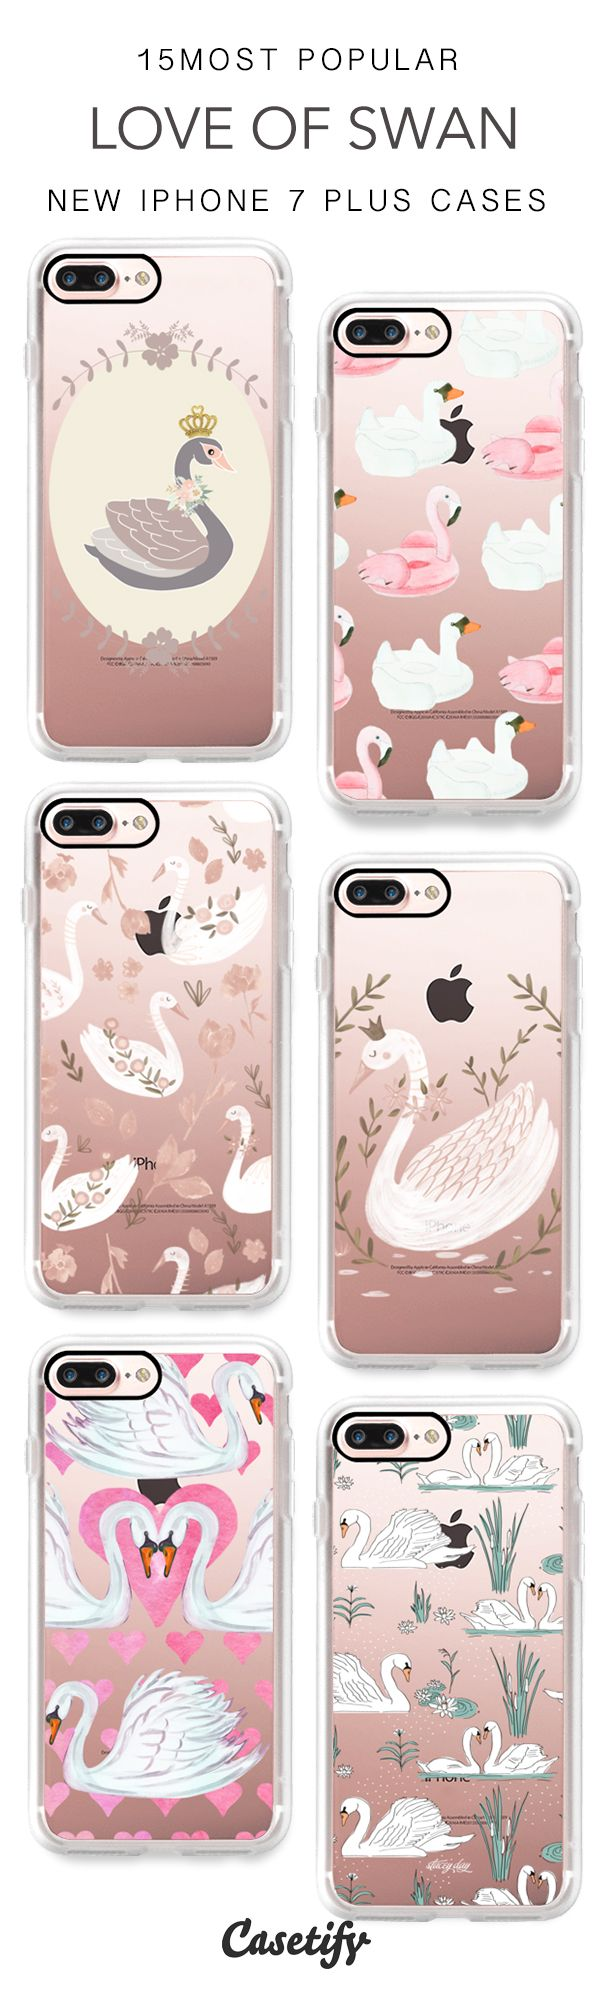 Swans are so loveable. 15 Most Popular Swans iPhone 7 Cases & iPhone 7 Plus Cases here > https://www.casetify.com/artworks/oOgXPPHs6l